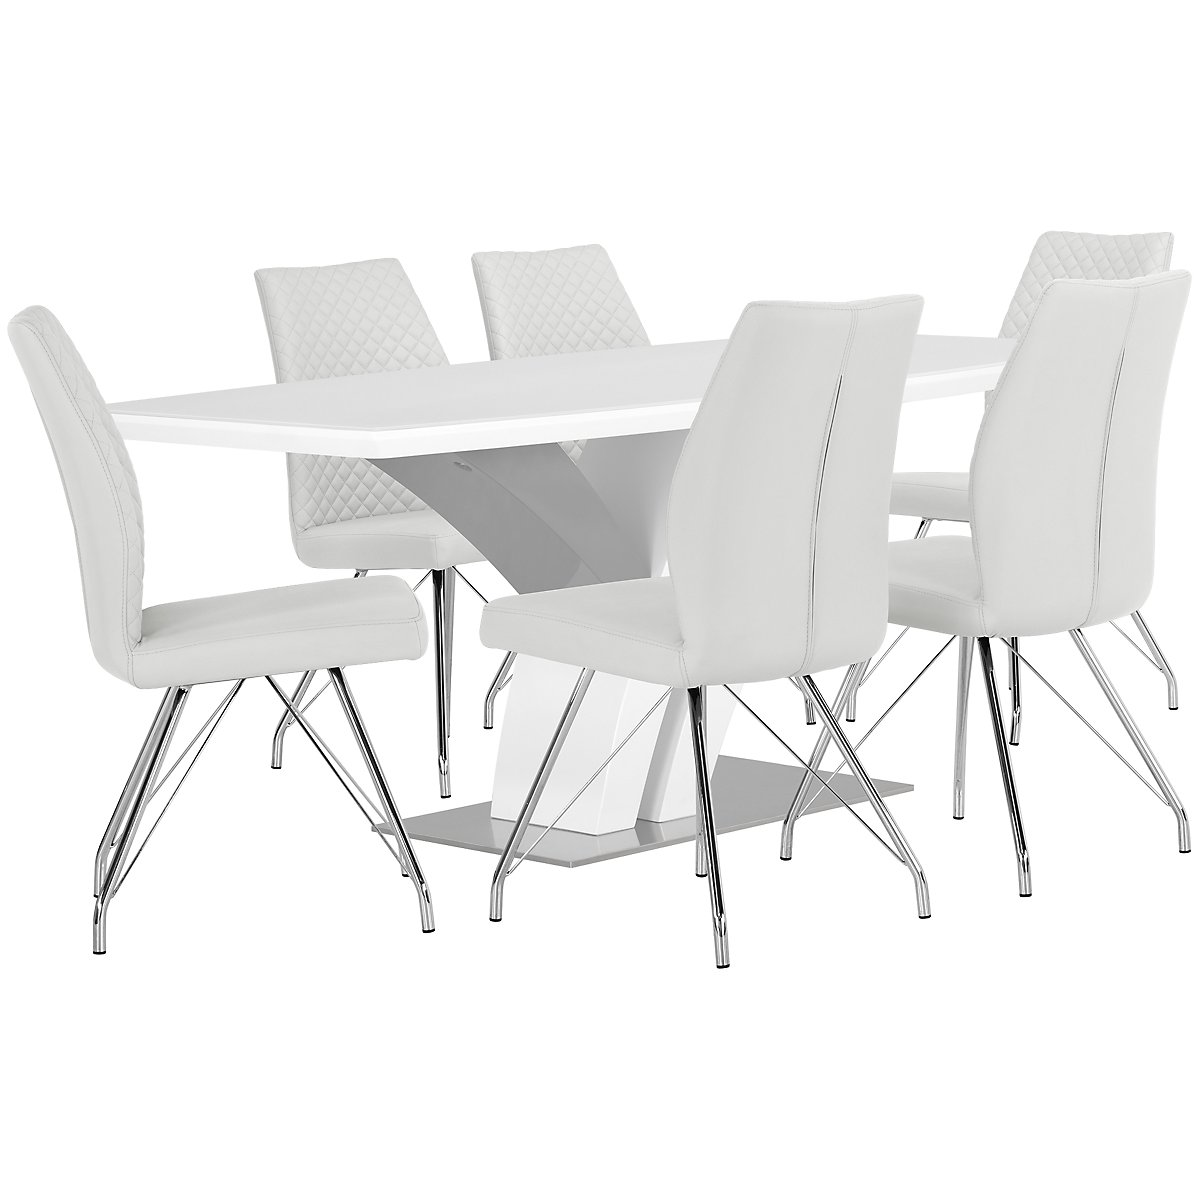 Lima White Wood Table & 4 Upholstered Chairs